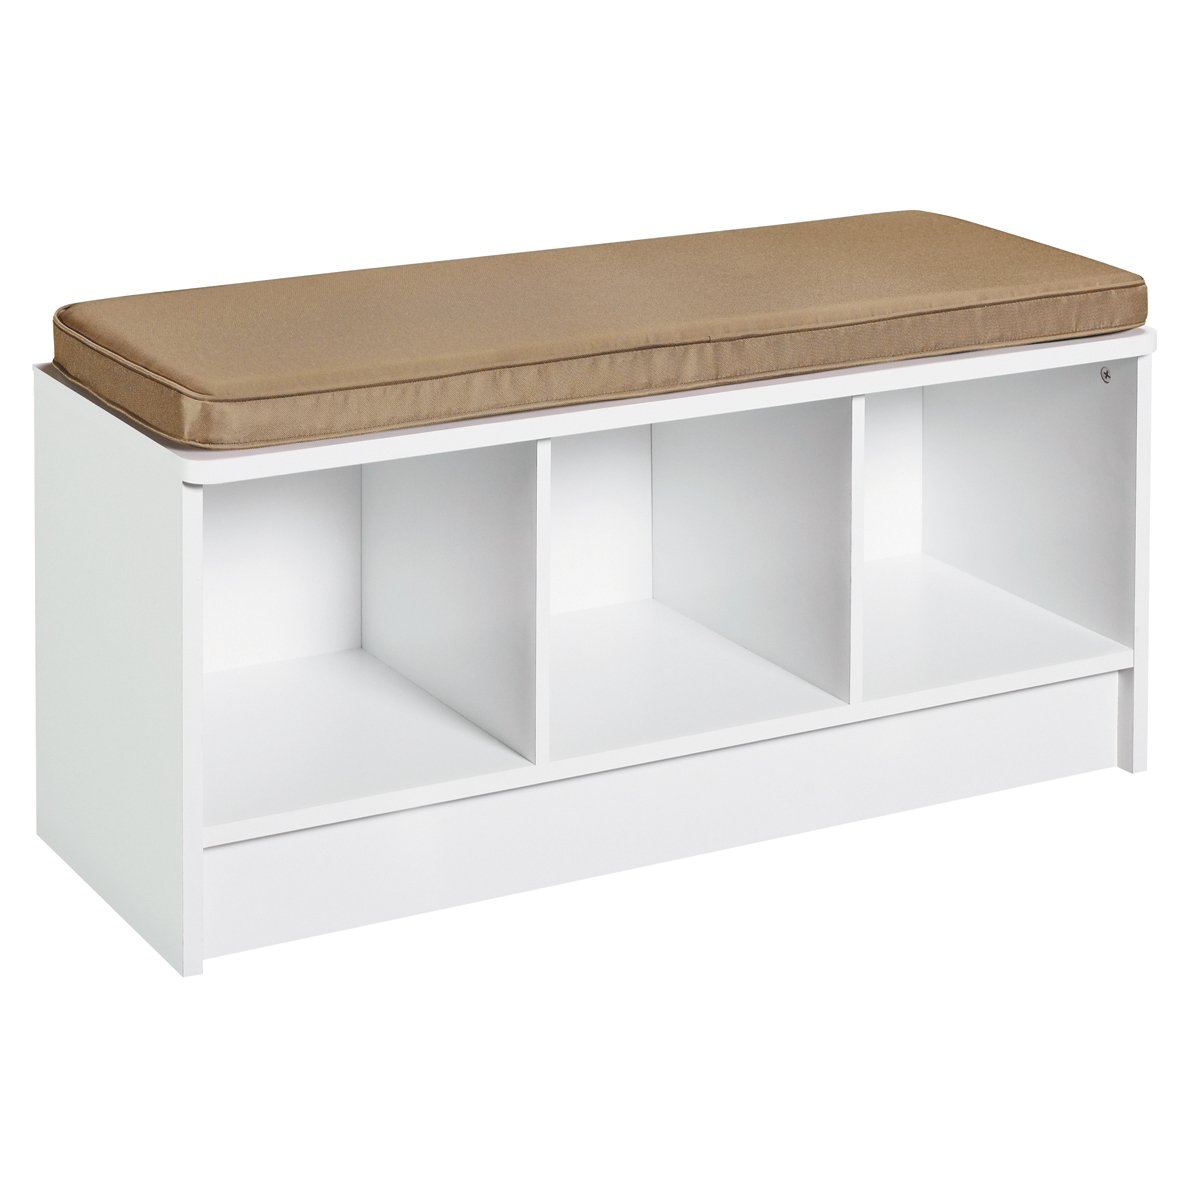 Amazon.com ClosetMaid 1569 Cubeicals 3-Cube Storage Bench White Home u0026 Kitchen  sc 1 st  Amazon.com & Amazon.com: ClosetMaid 1569 Cubeicals 3-Cube Storage Bench White ...